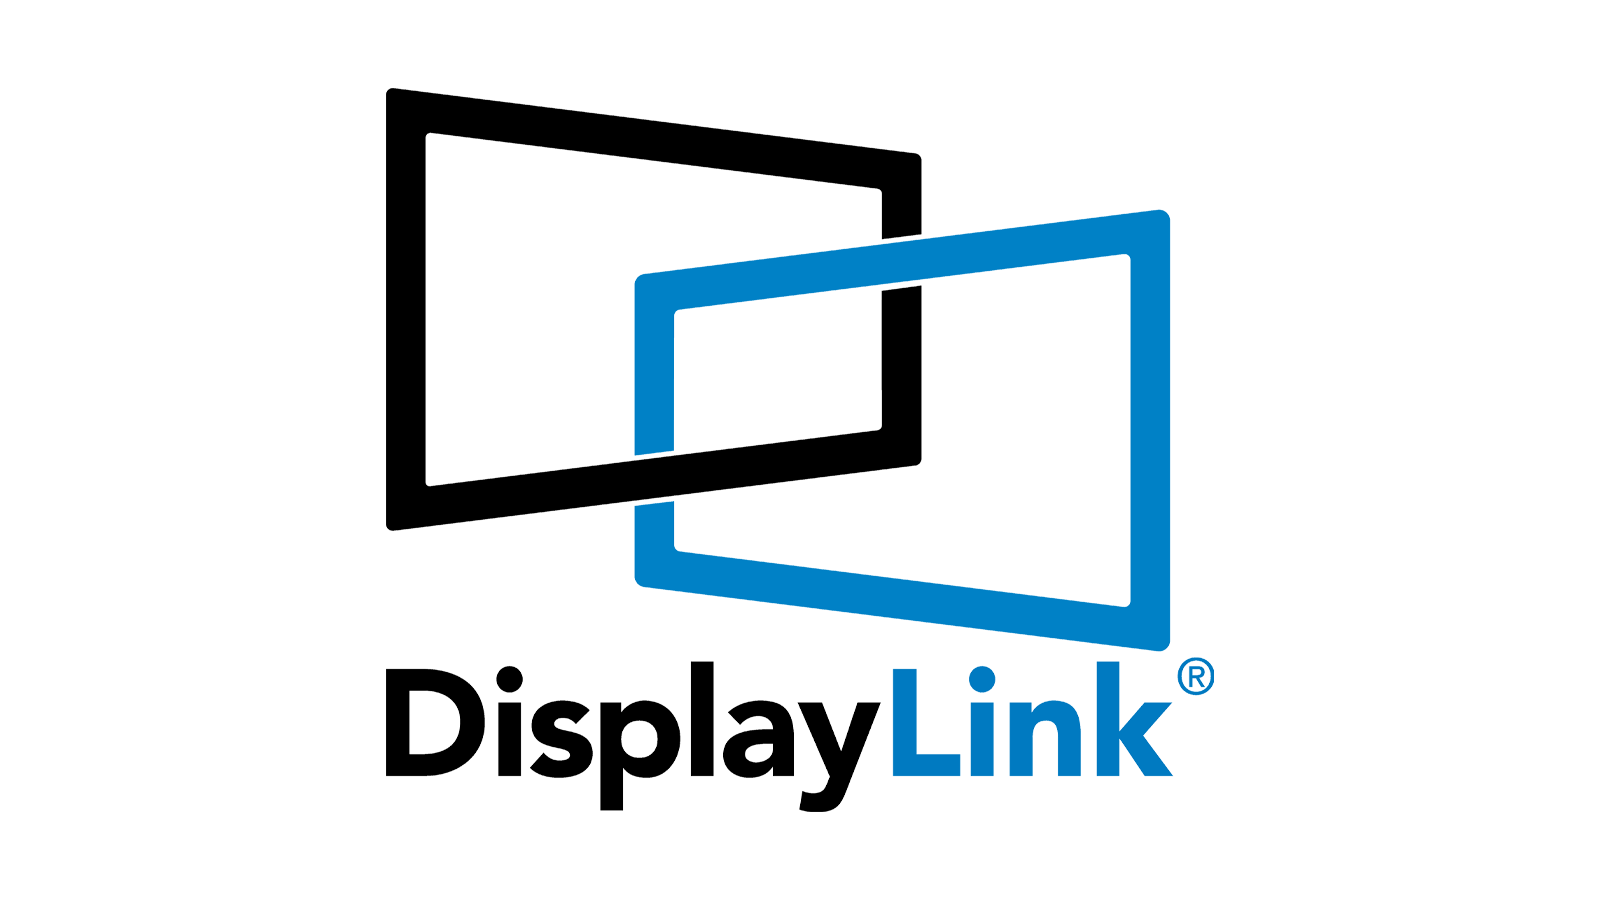 The DisplayLink Logo